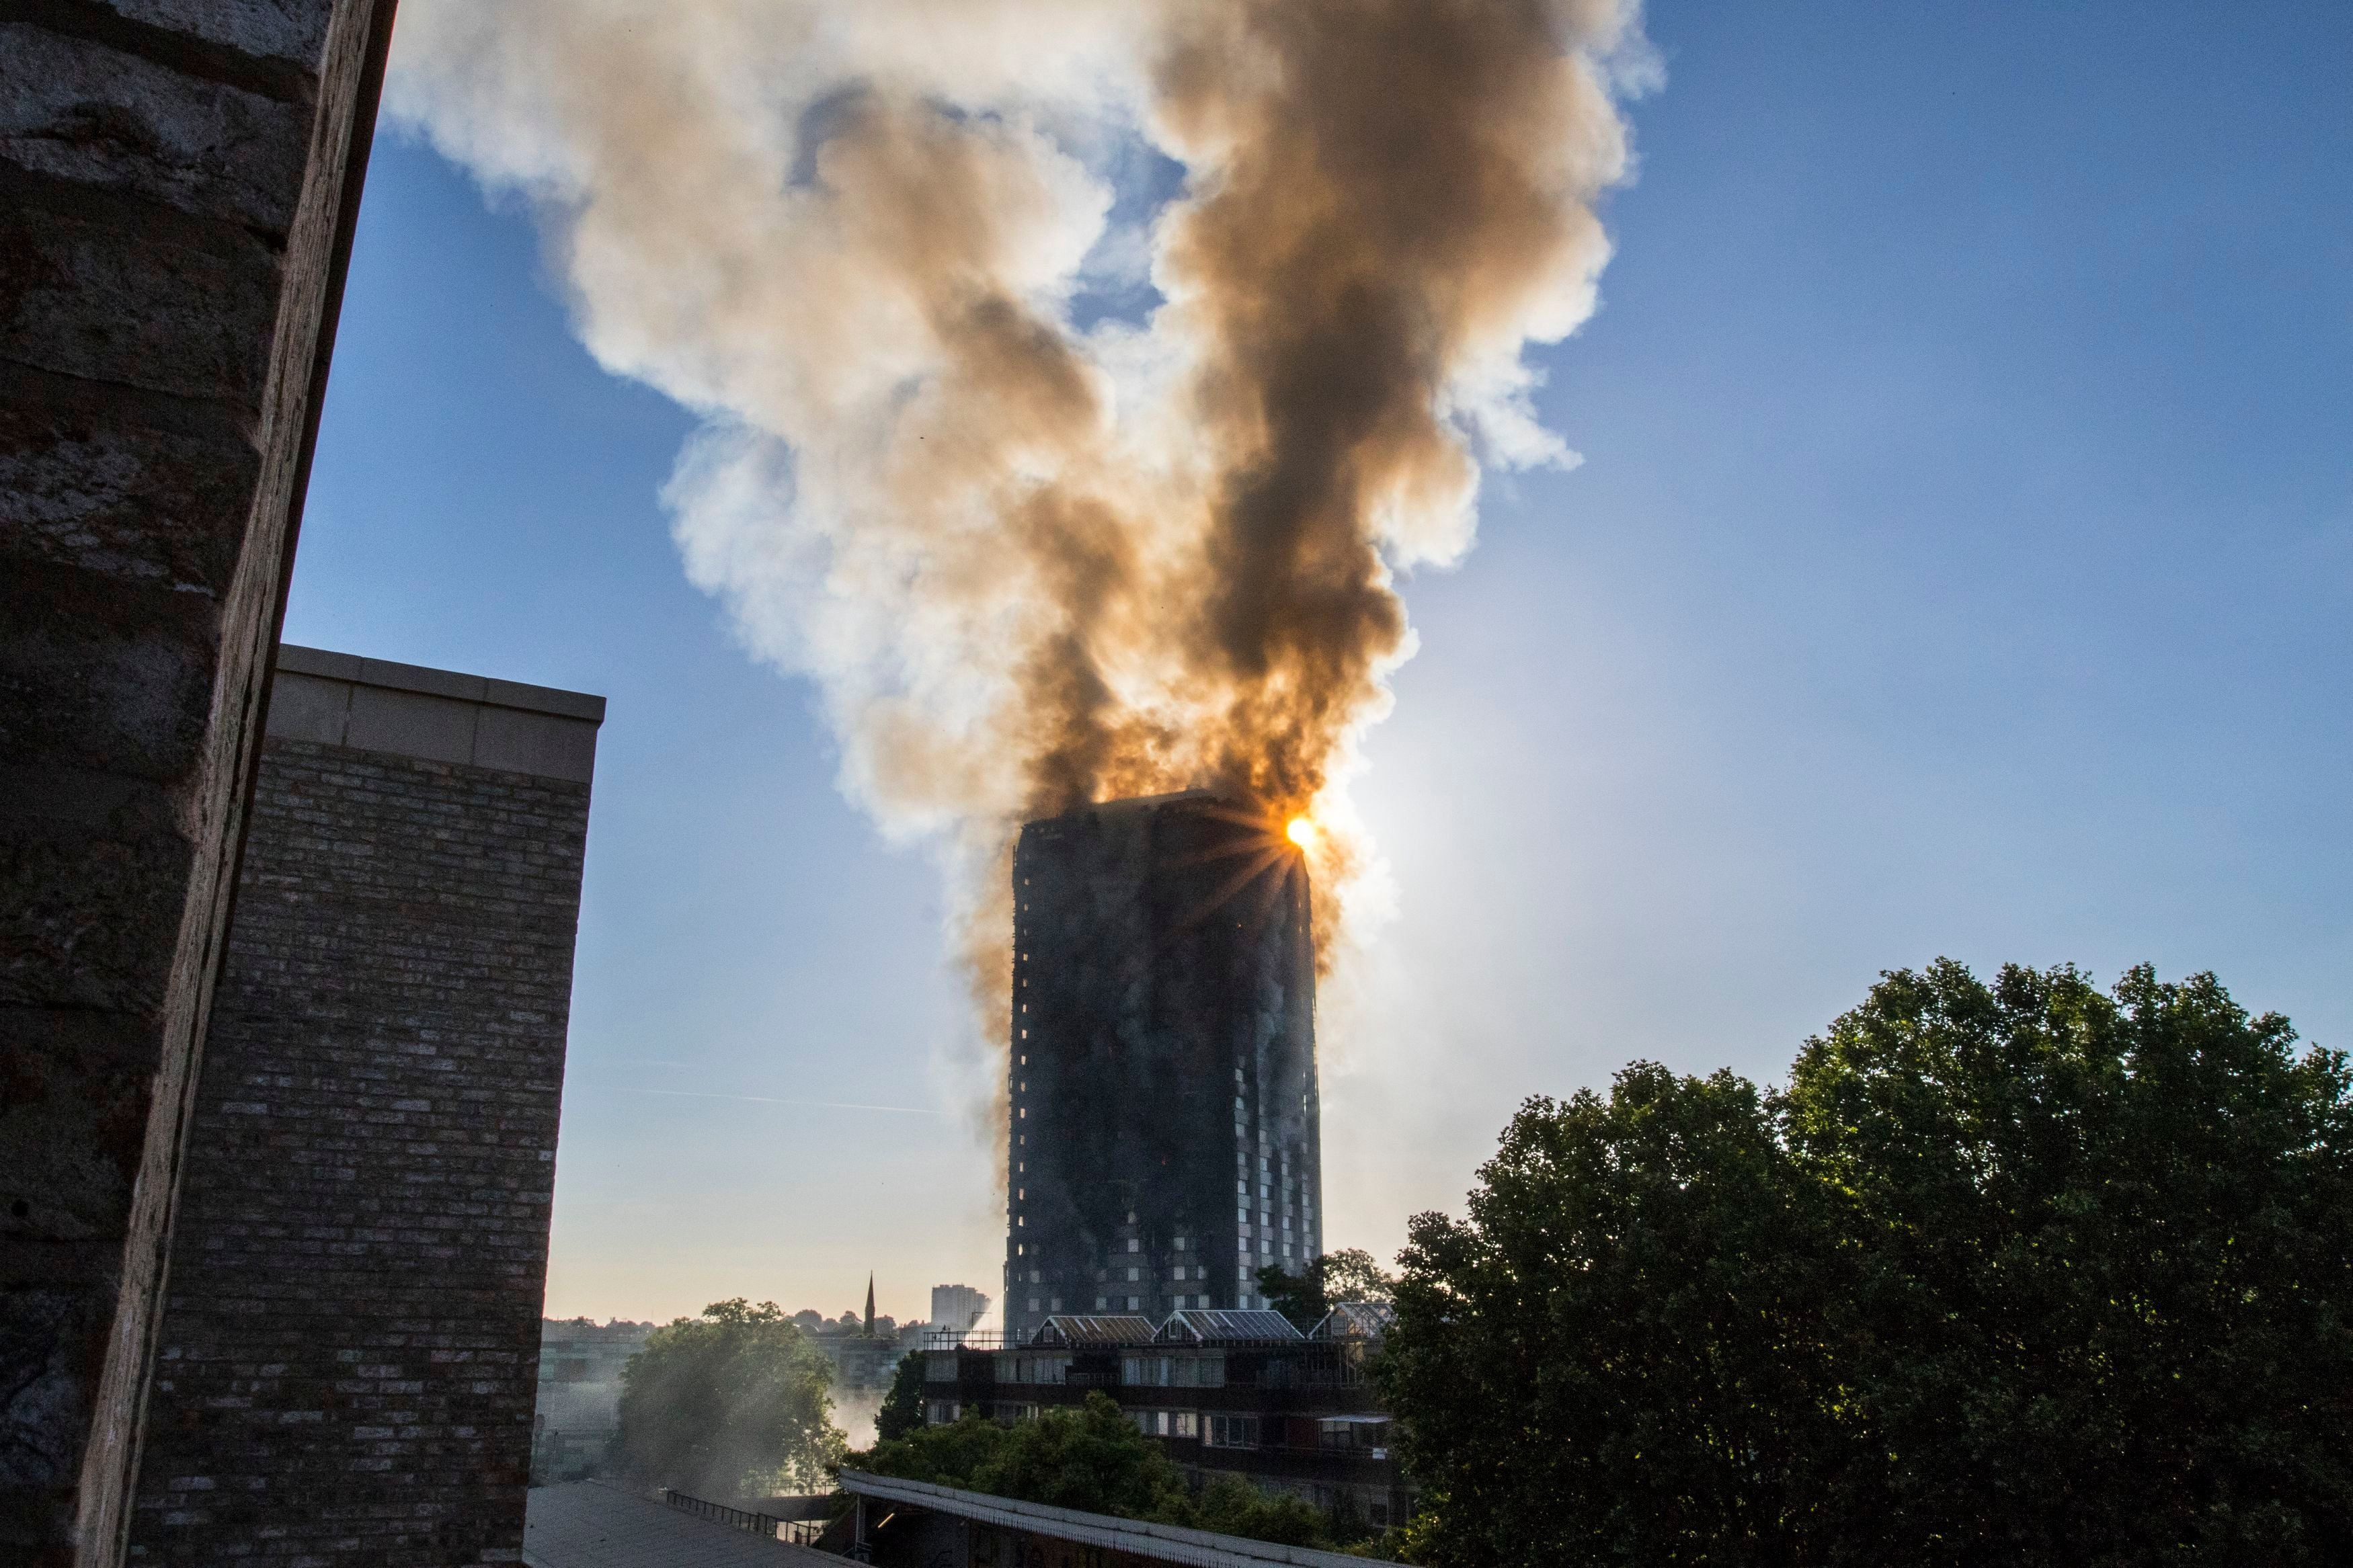 71 people lost their lives in the London tower block fire, which left a community traumatised